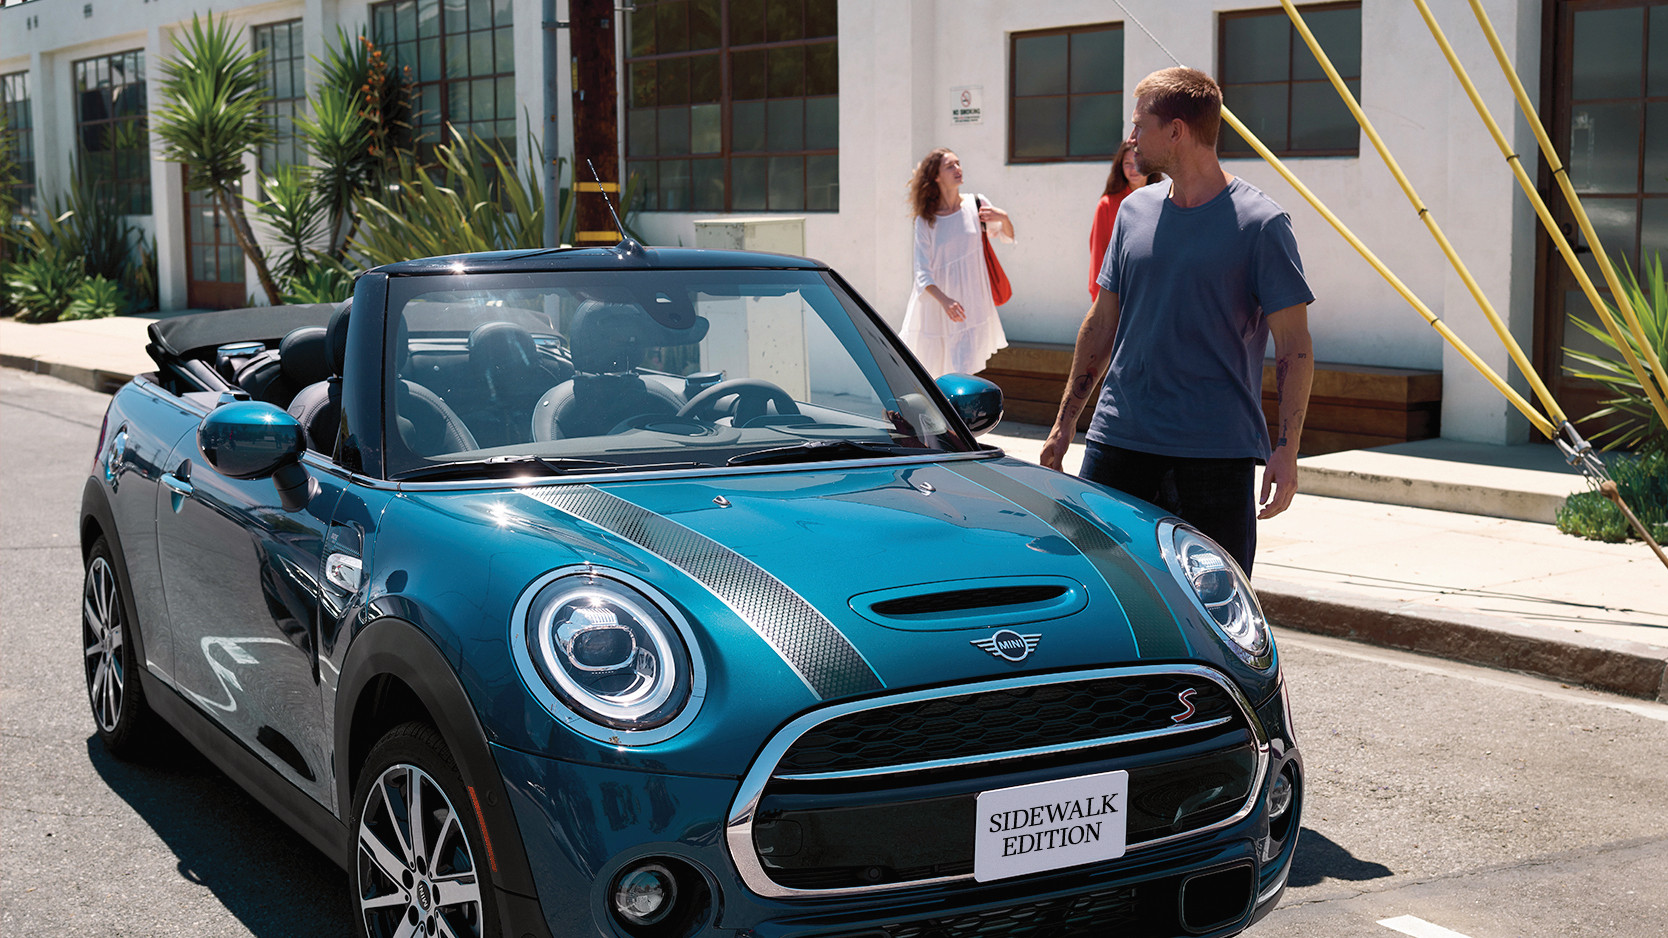 A man about to enter the MINI Cooper S Convertible Sidewalk Edition parked on the street.